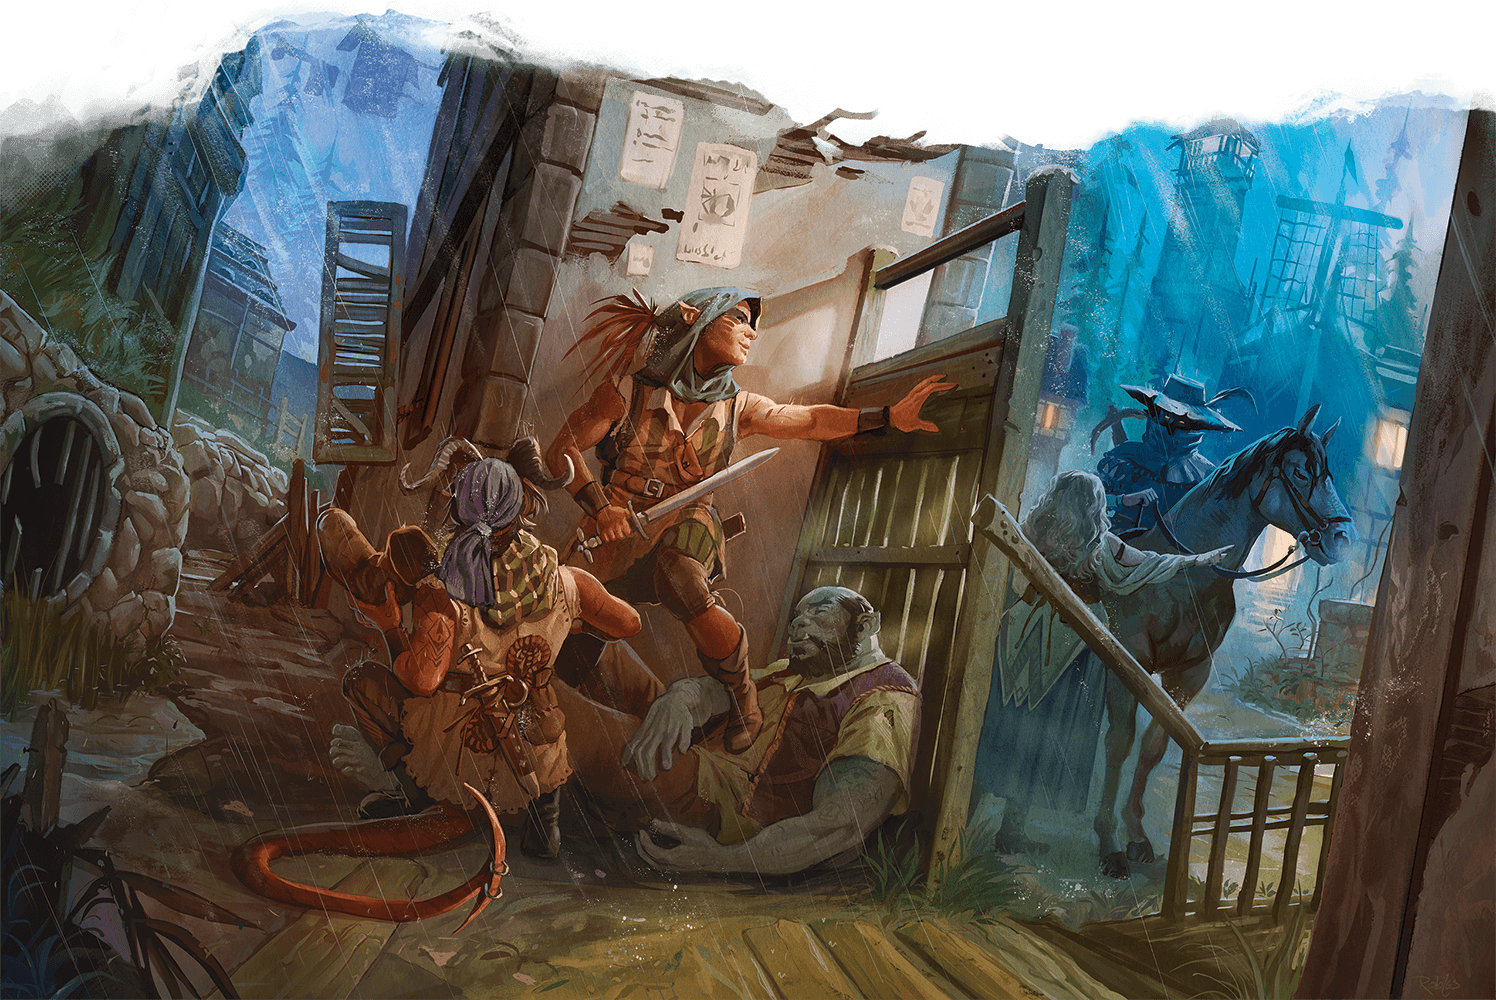 5E D&D Explorers Guide to Wildemount on the streets of Shadycreek Run behind cover